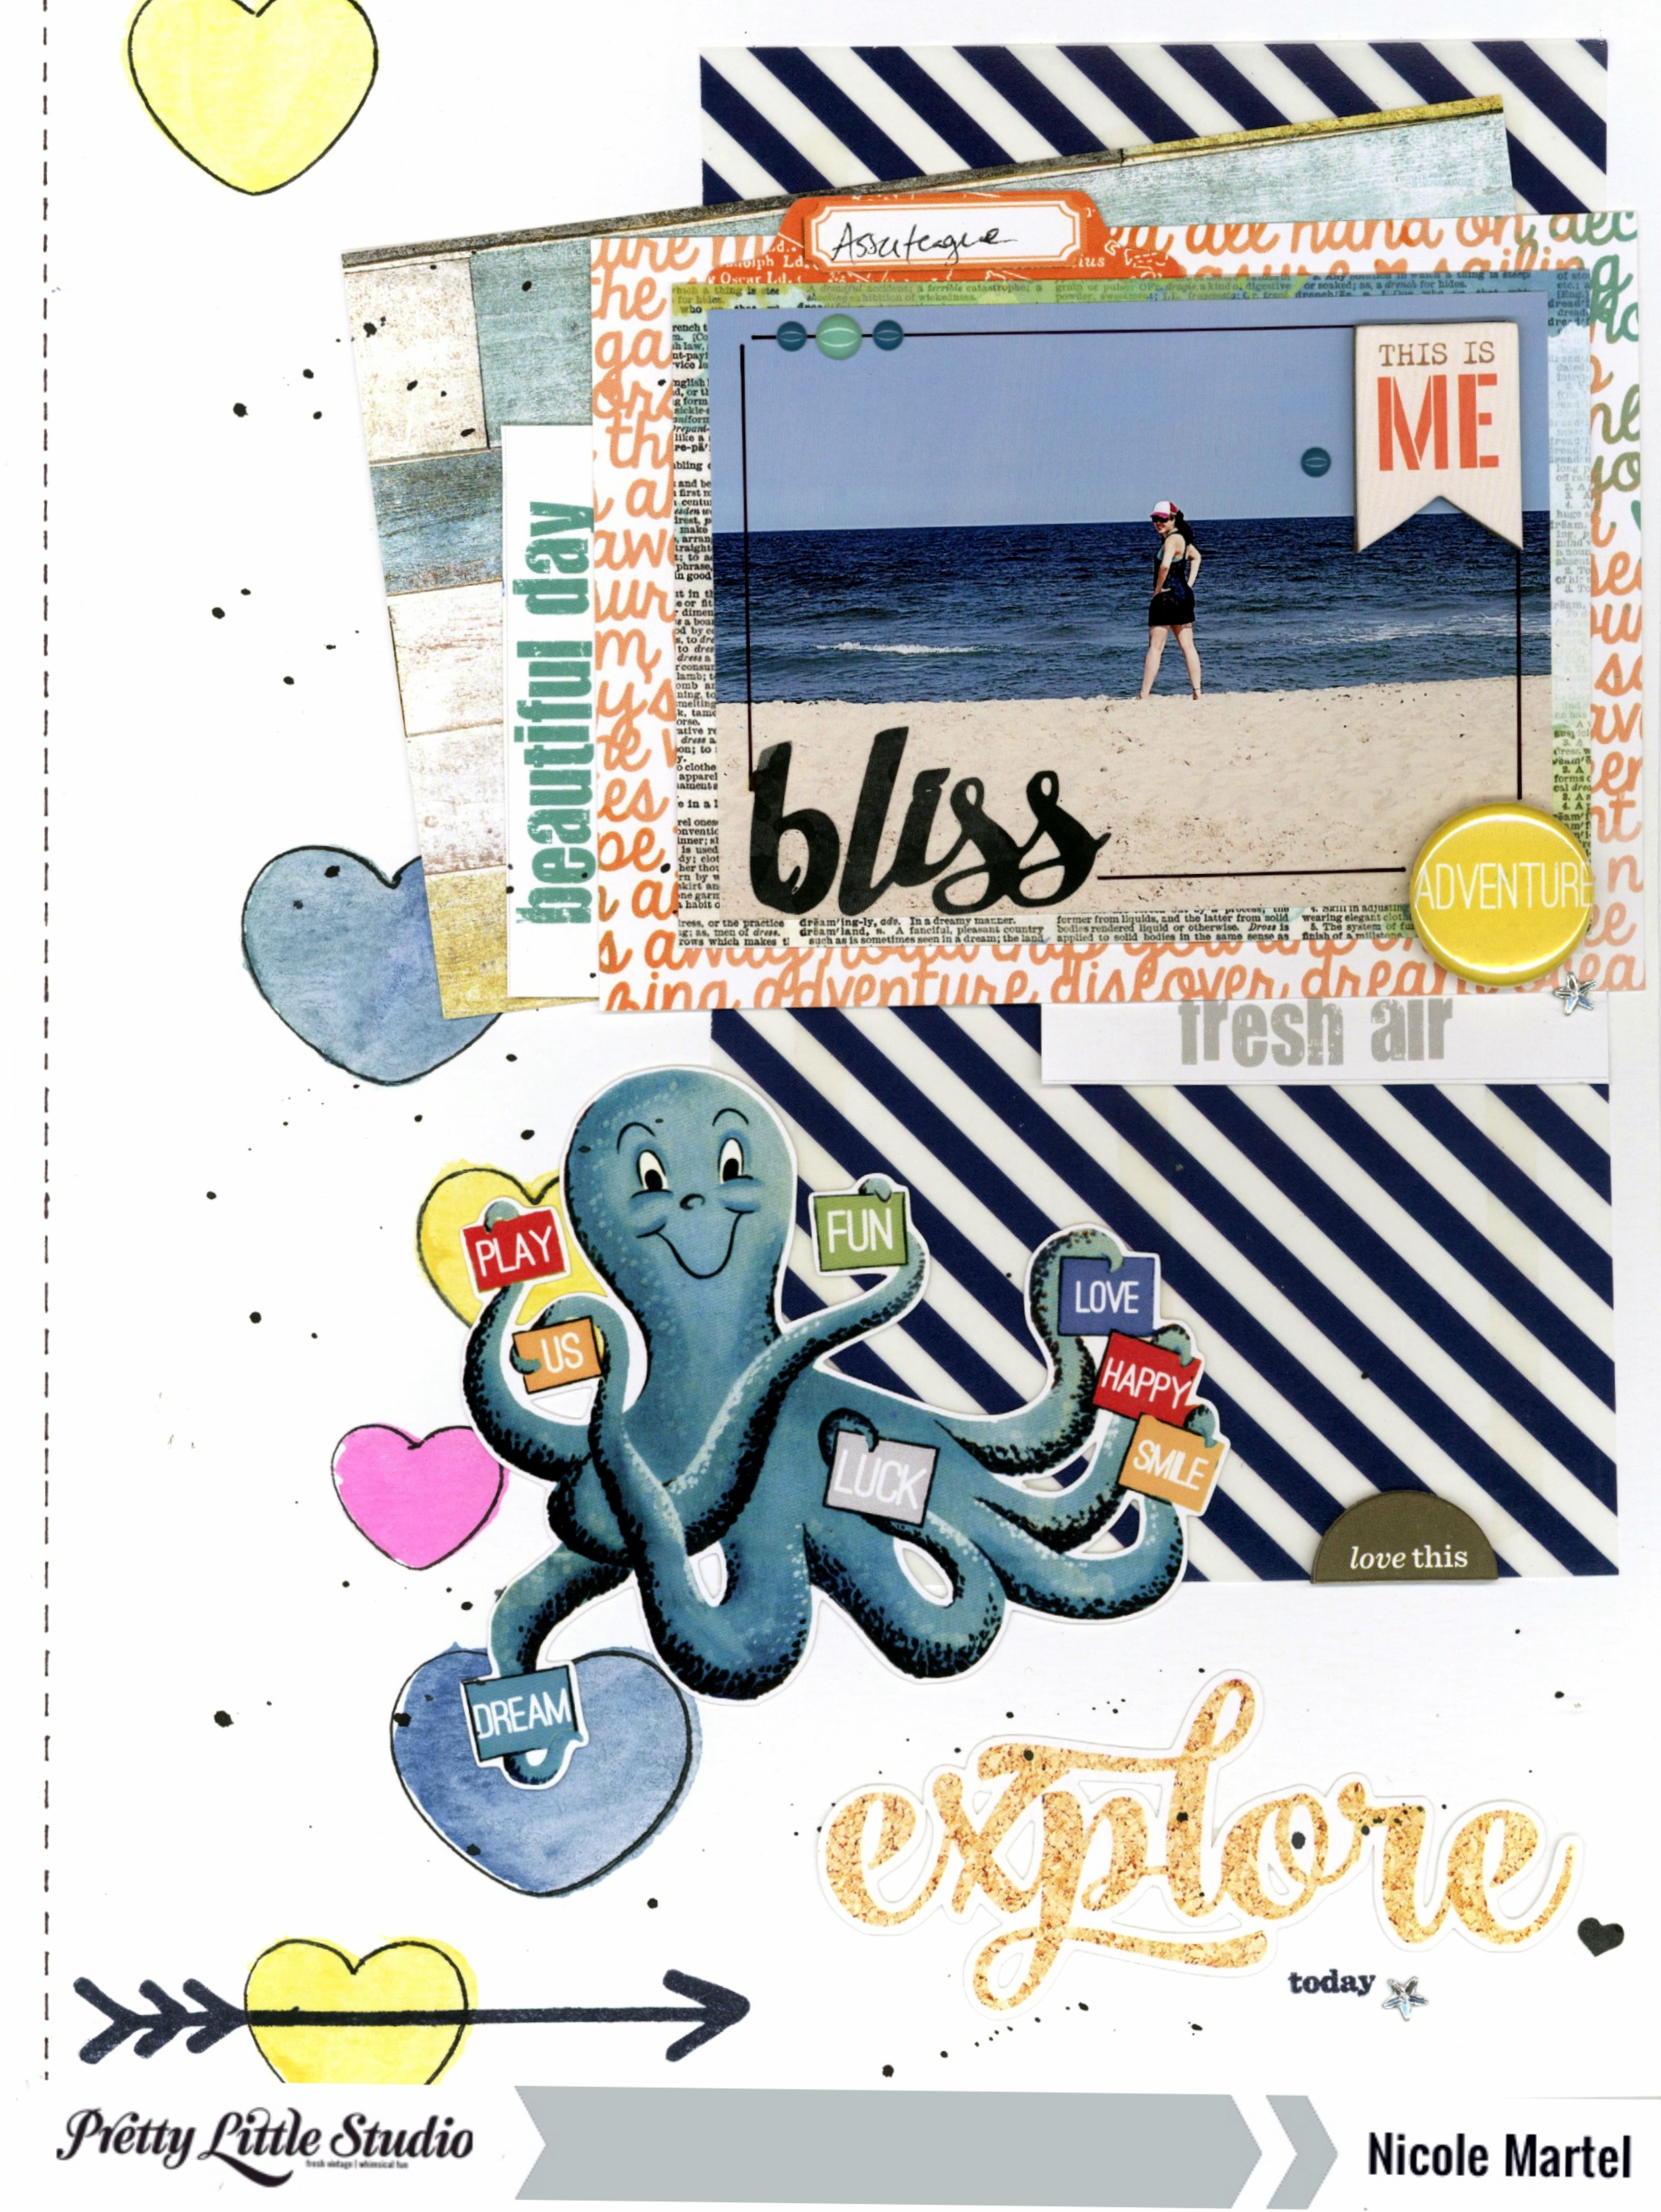 explore_nicole martel_pretty little studio_layout